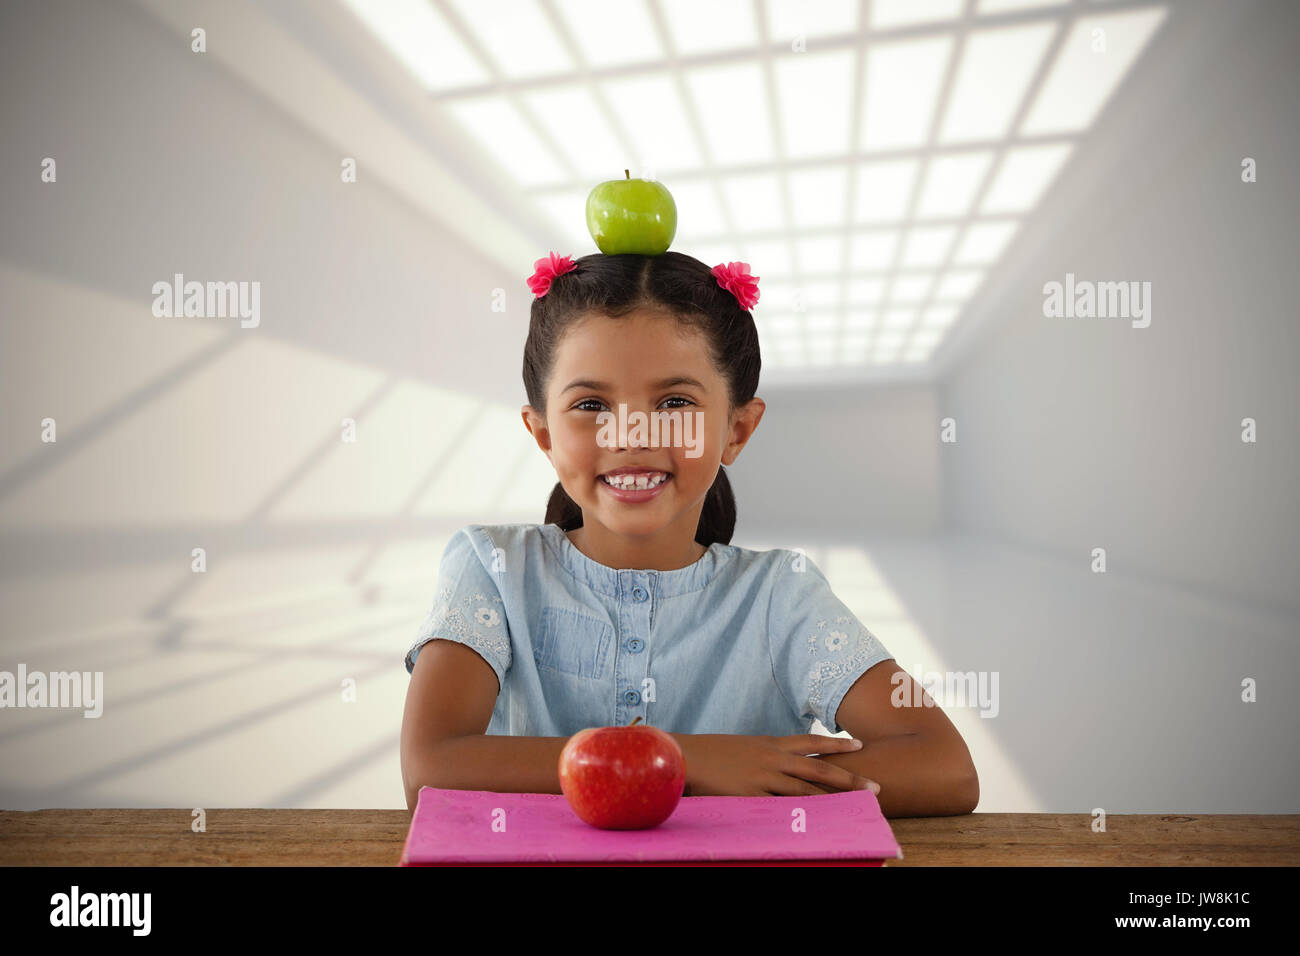 Smiling girl with Granny Smith apple on head against room with windows at ceiling - Stock Image